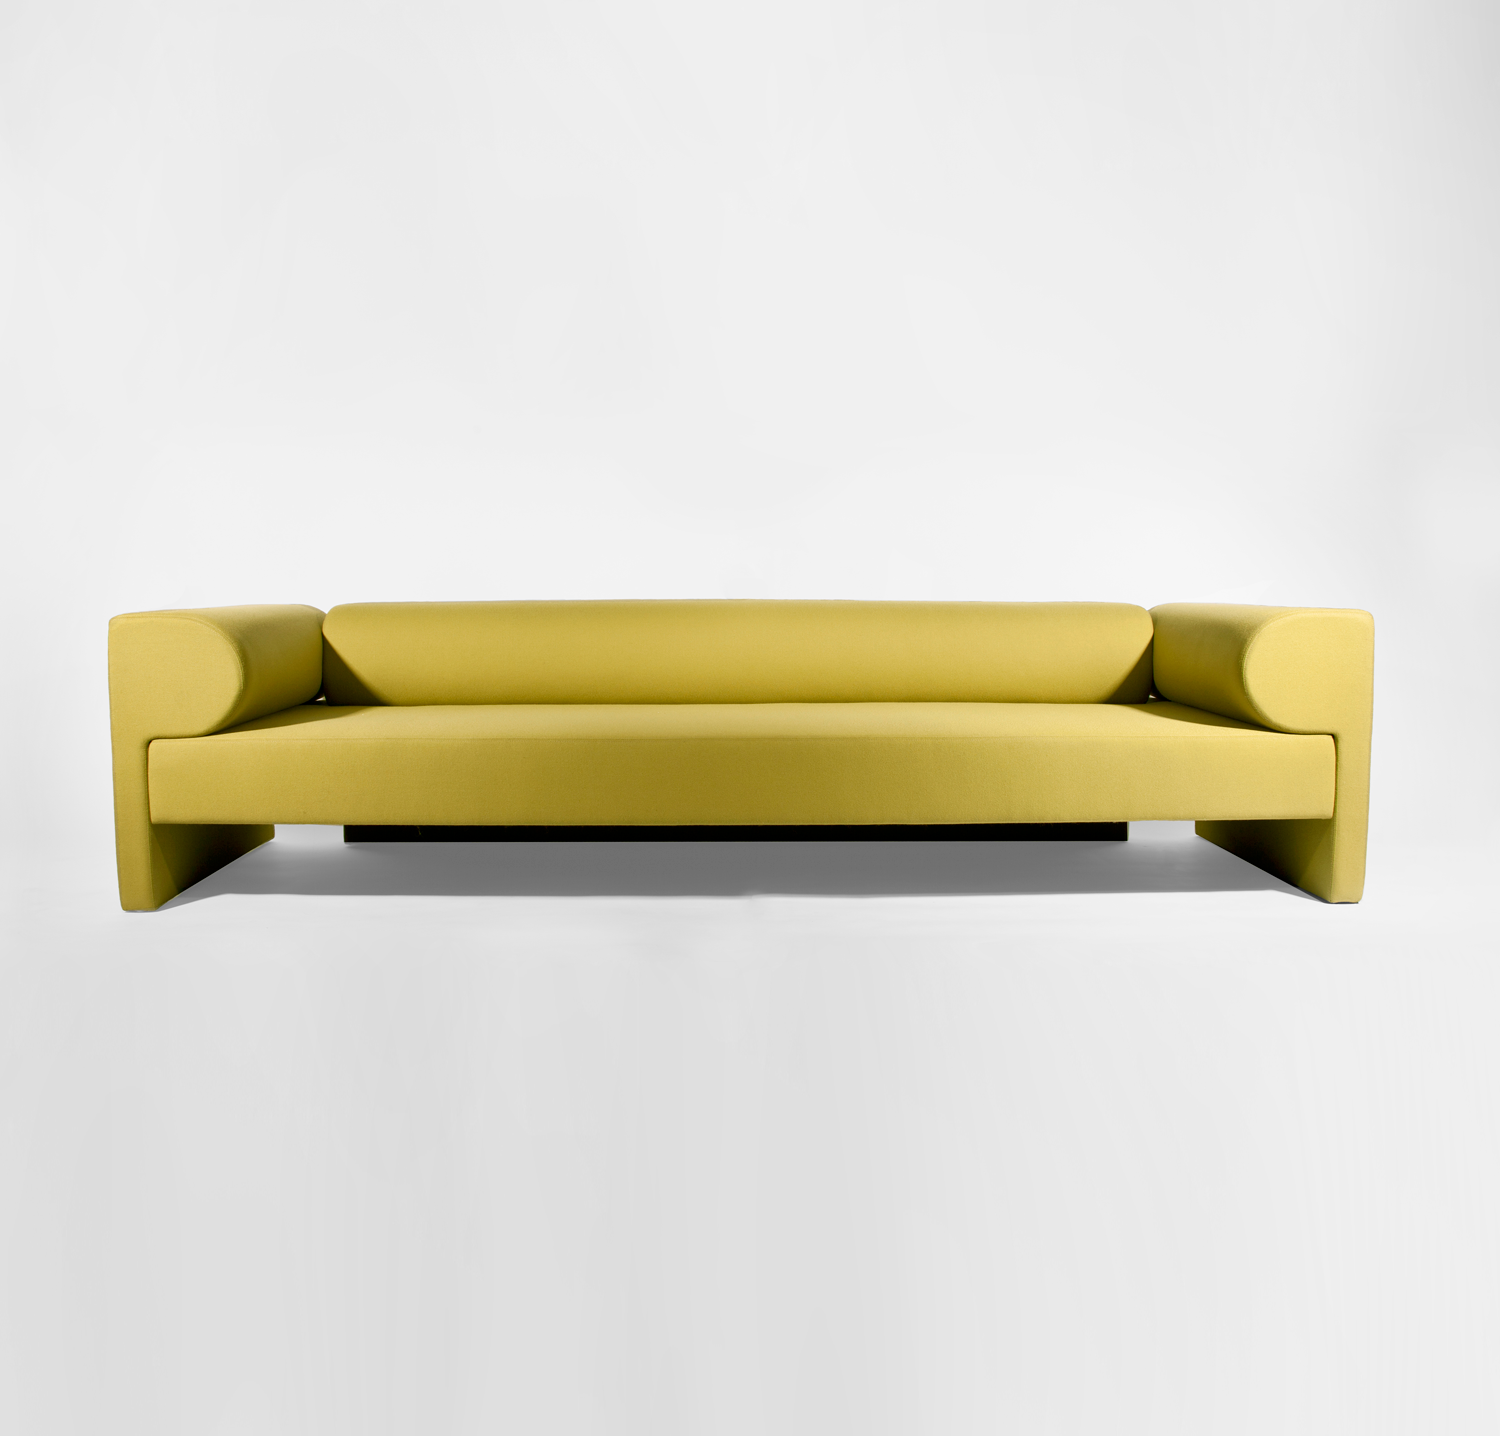 Say Sofa by Gentner